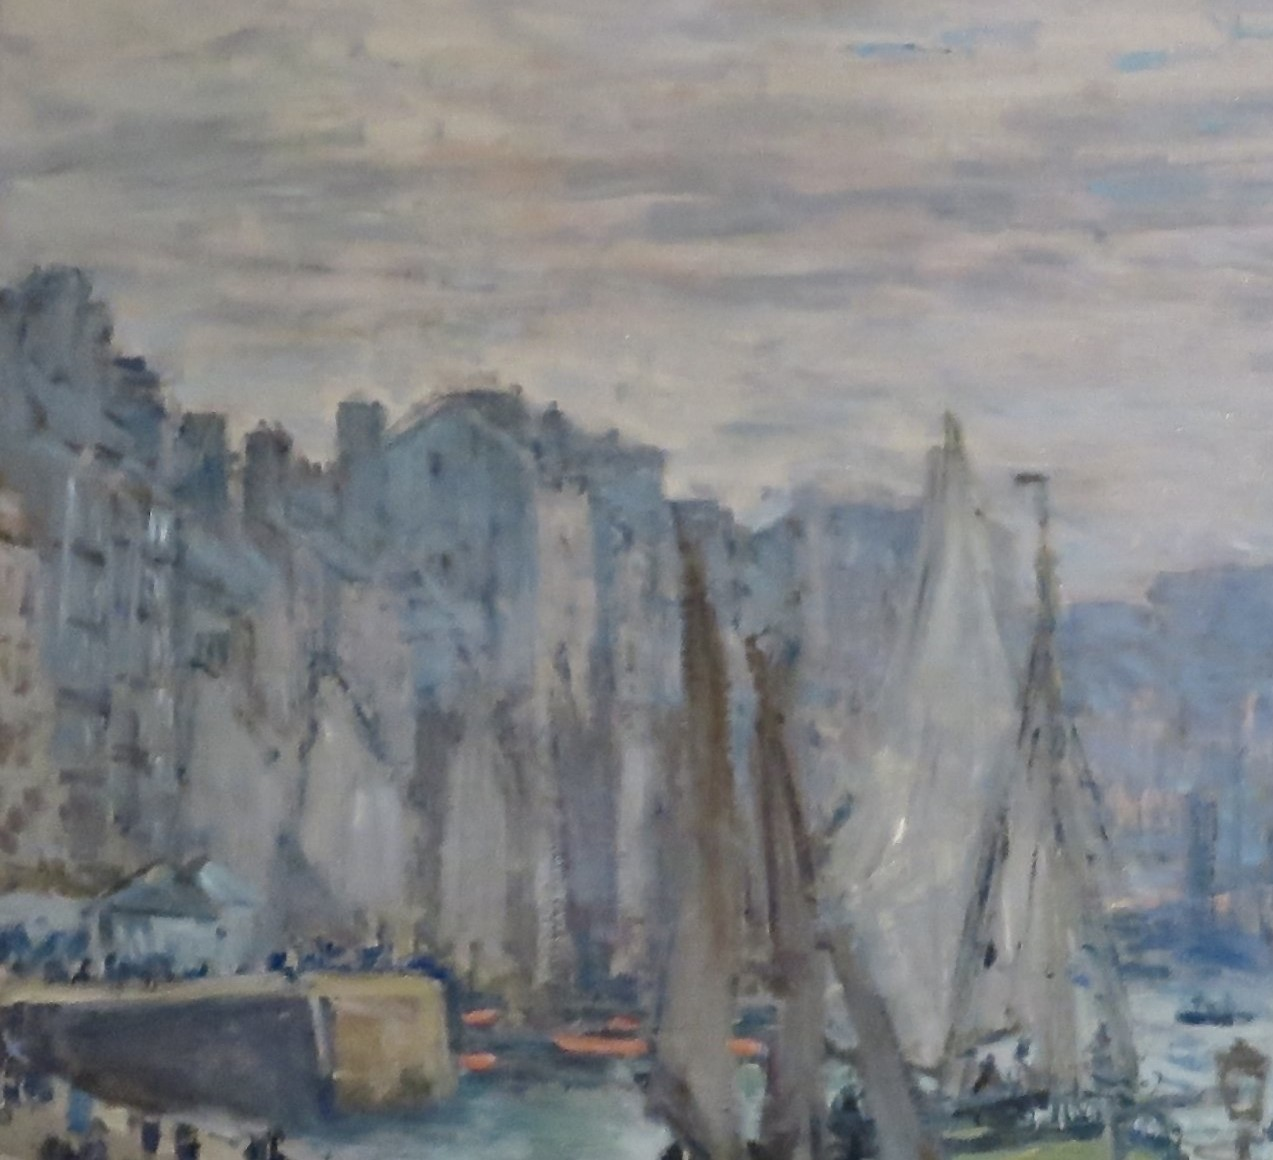 'Le_Havre,_Bâteaux_de_Peche_Sortant_du_Port'_by_Claude_Monet,_1874